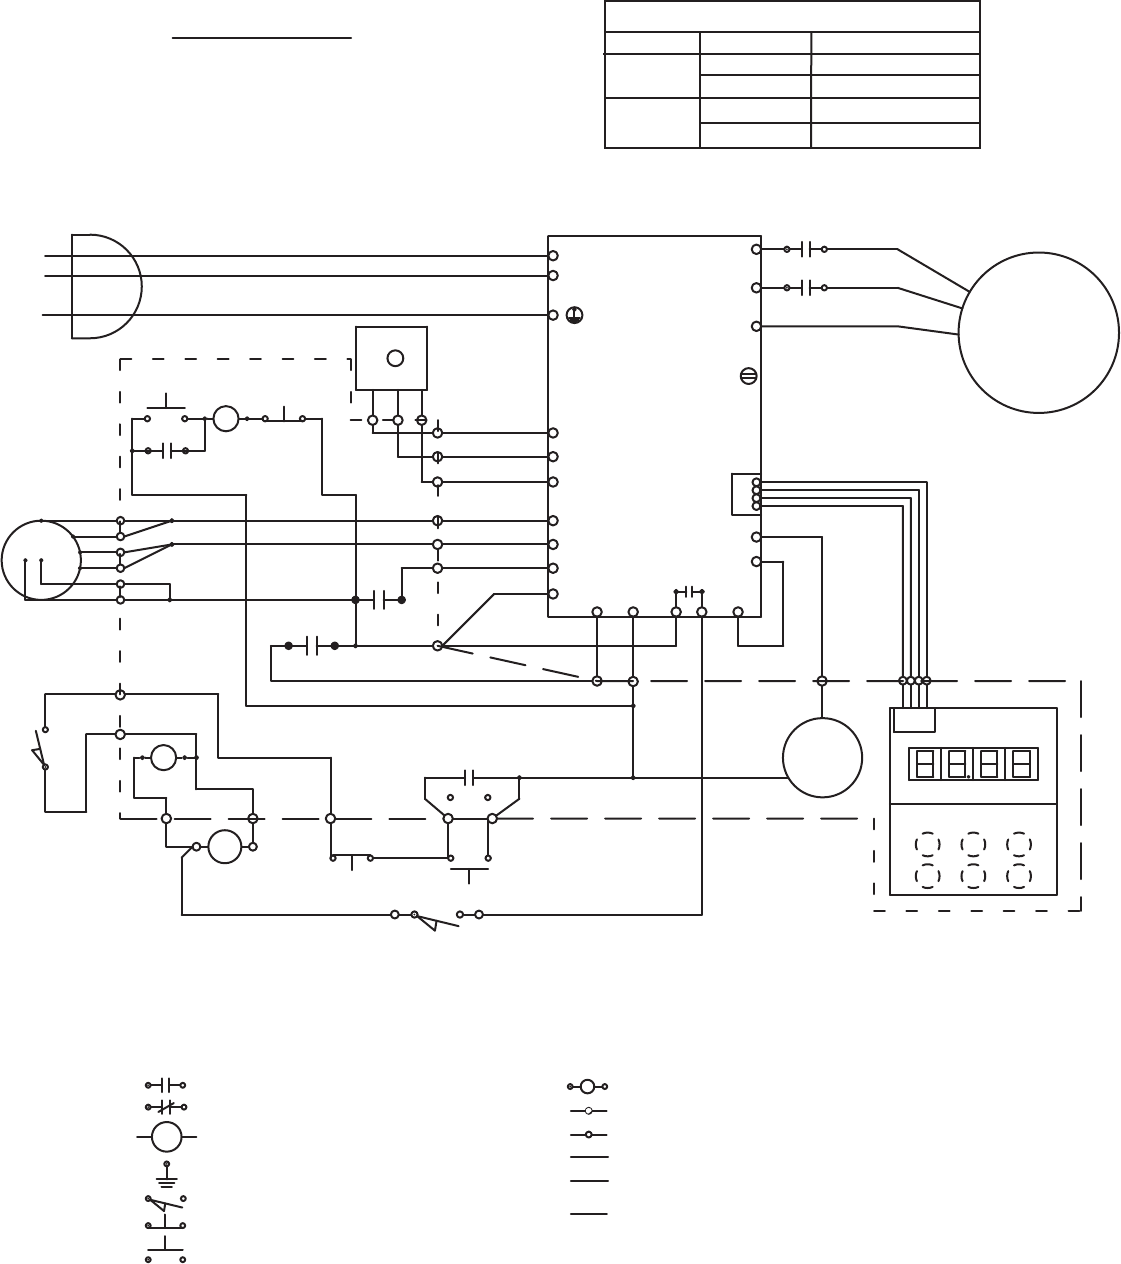 4cb5237c 5ab8 4928 9137 a28183484350 bg33 page 51 of hobart mixer hl200 user guide manualsonline com hobart wiring diagrams at mifinder.co